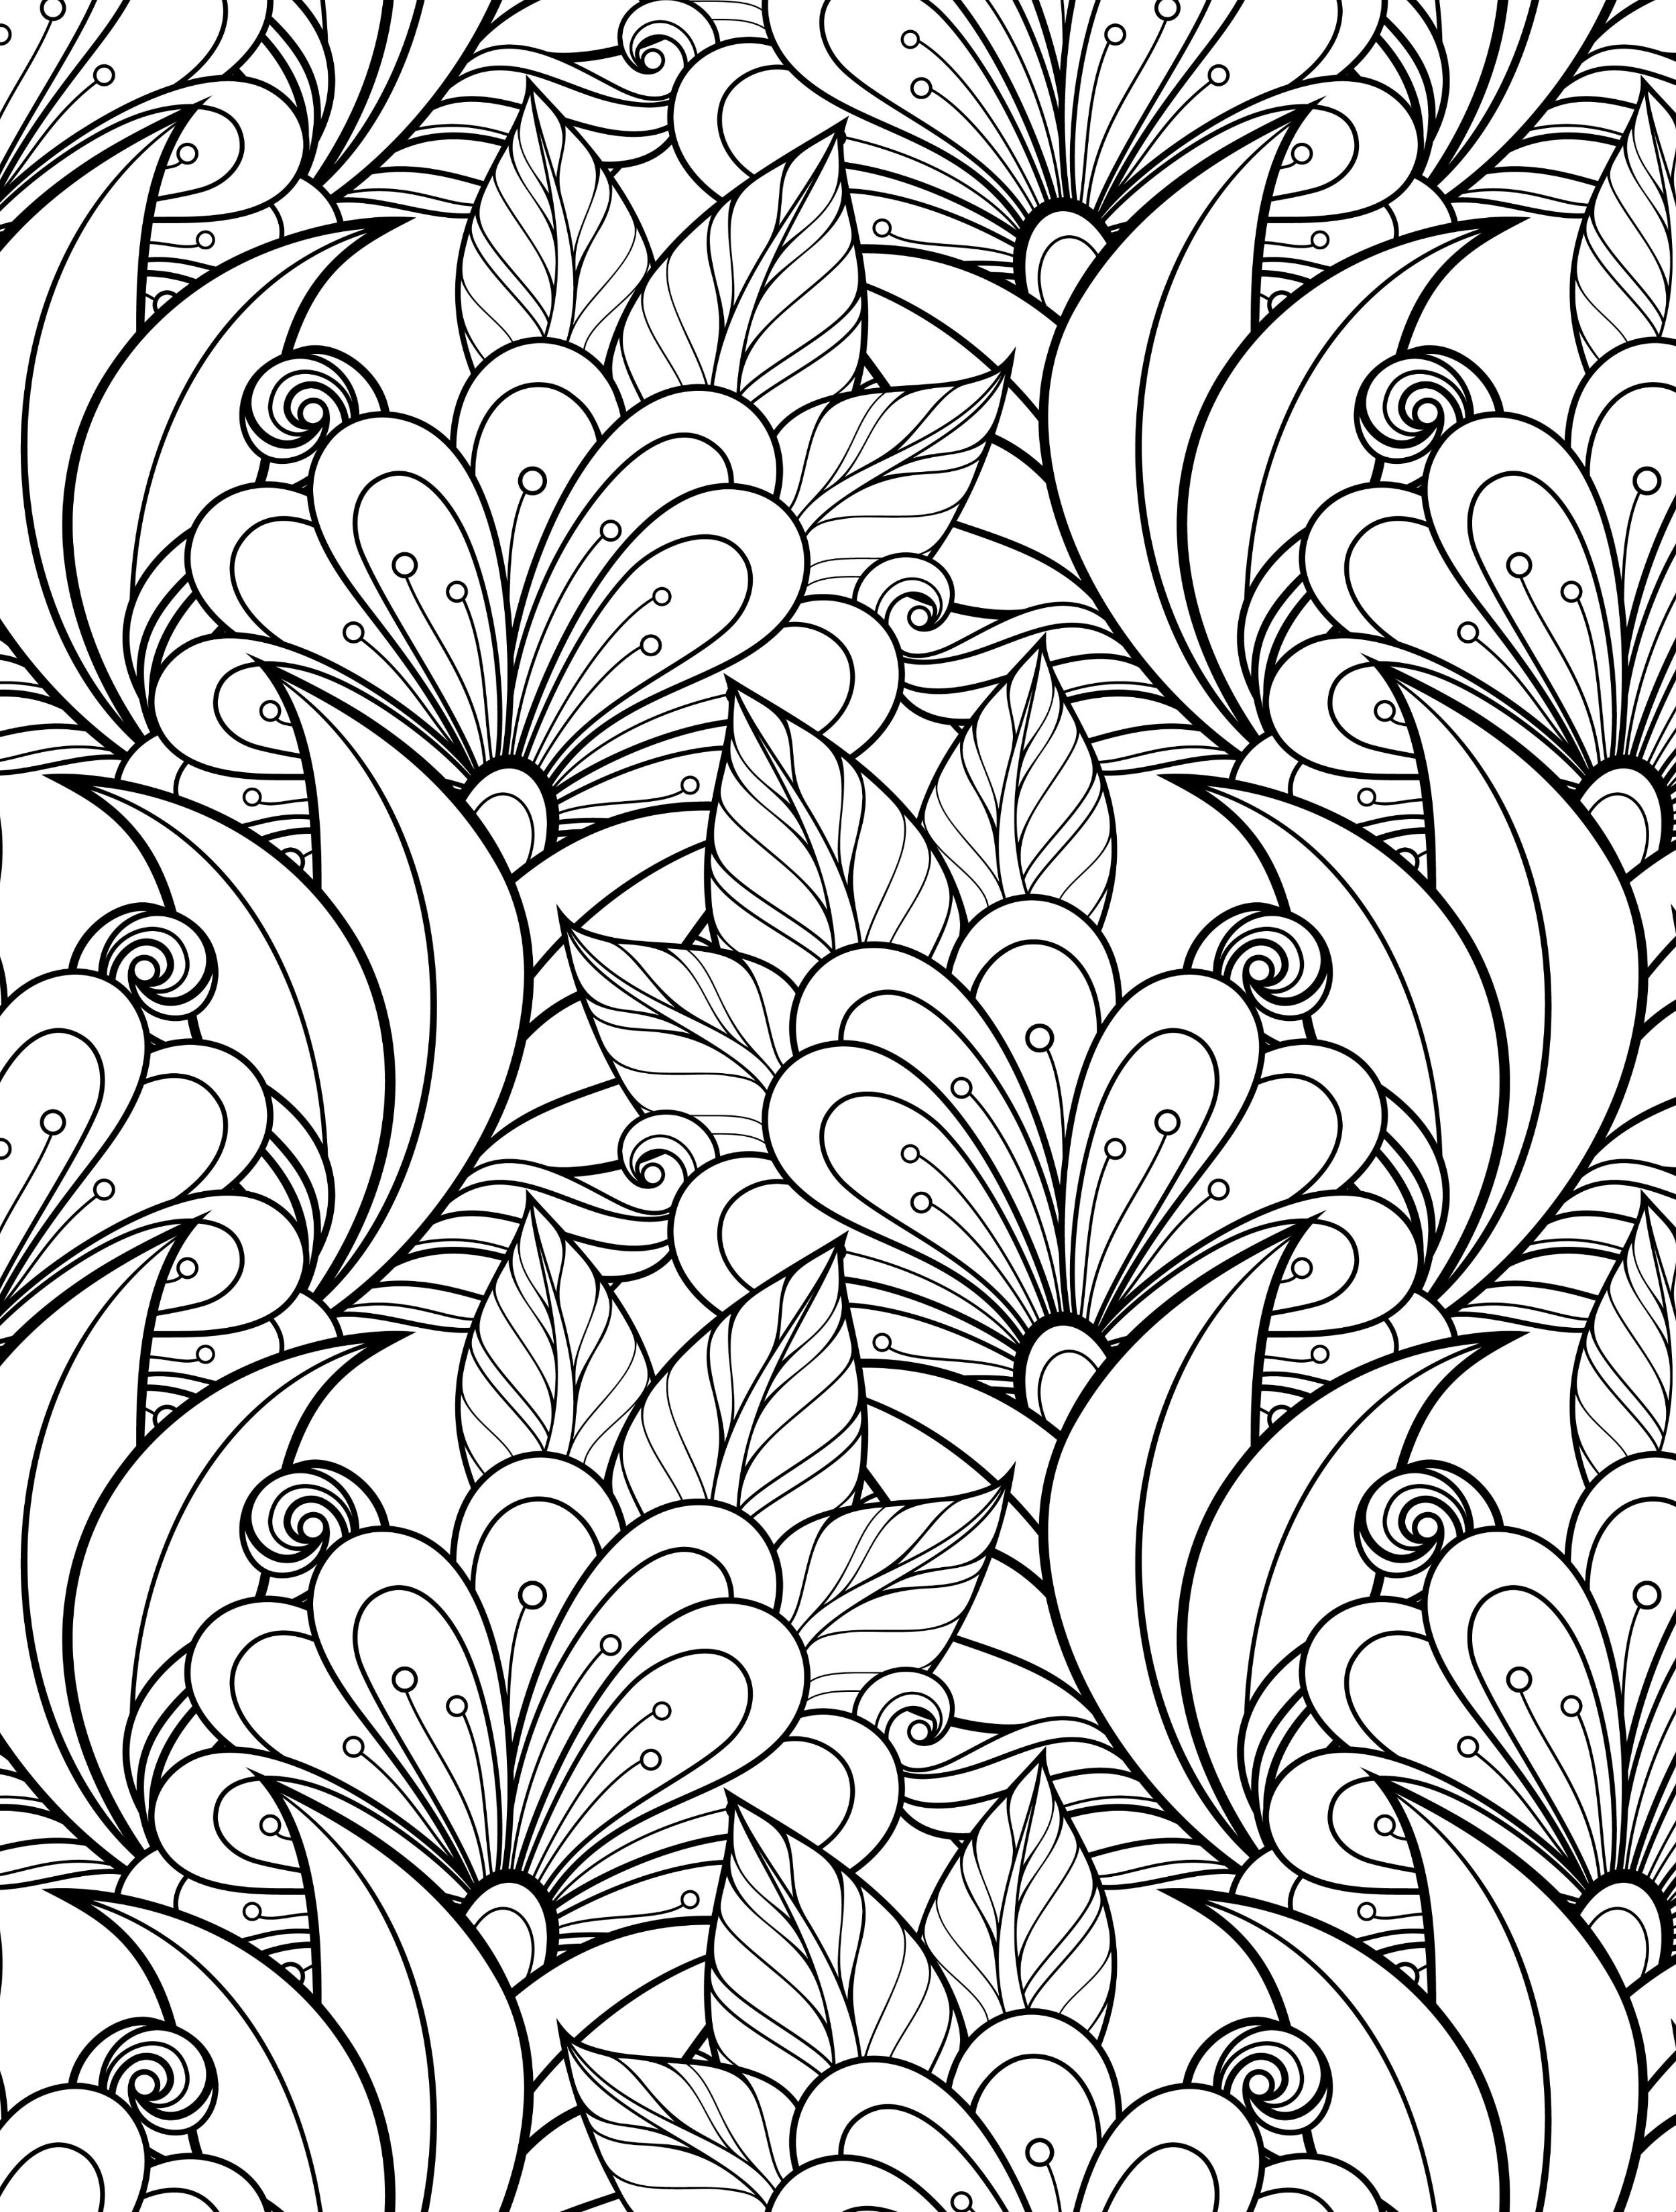 24 More Free Printable Adult Coloring PagesADULT FLOWERS COLORING ...